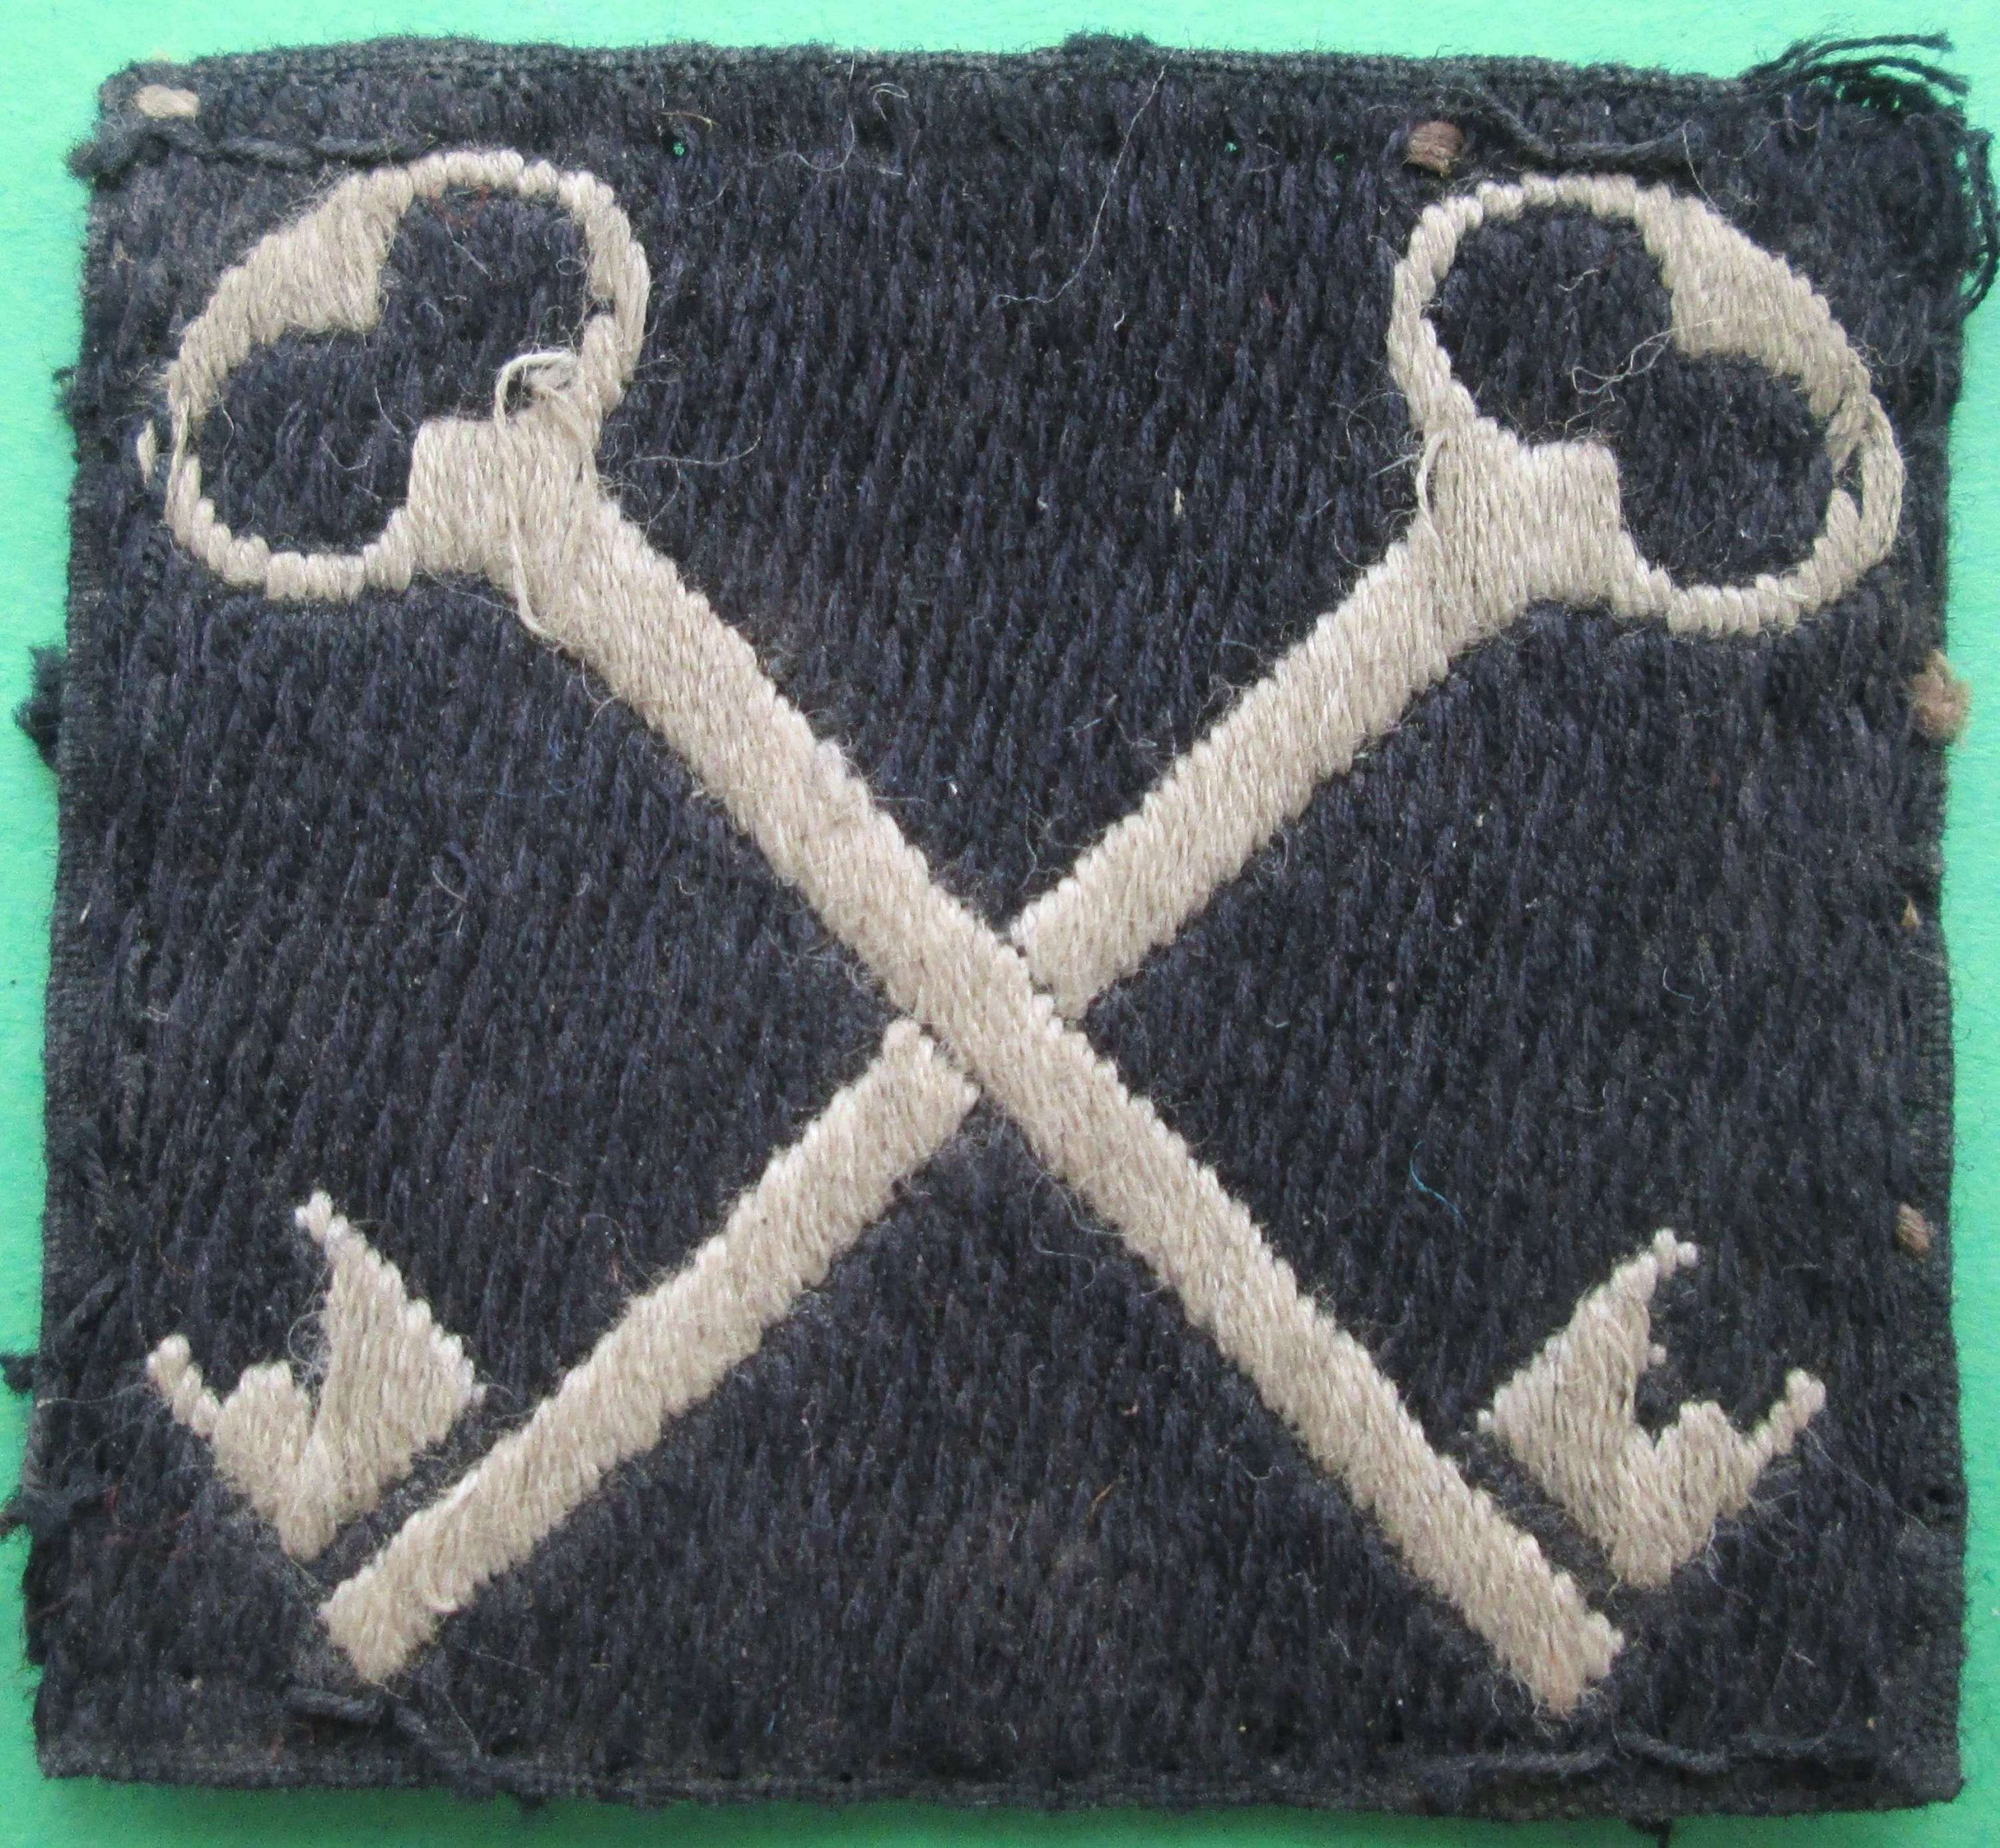 A SECOND INFANTRY DIVISION FORMATION PATCH